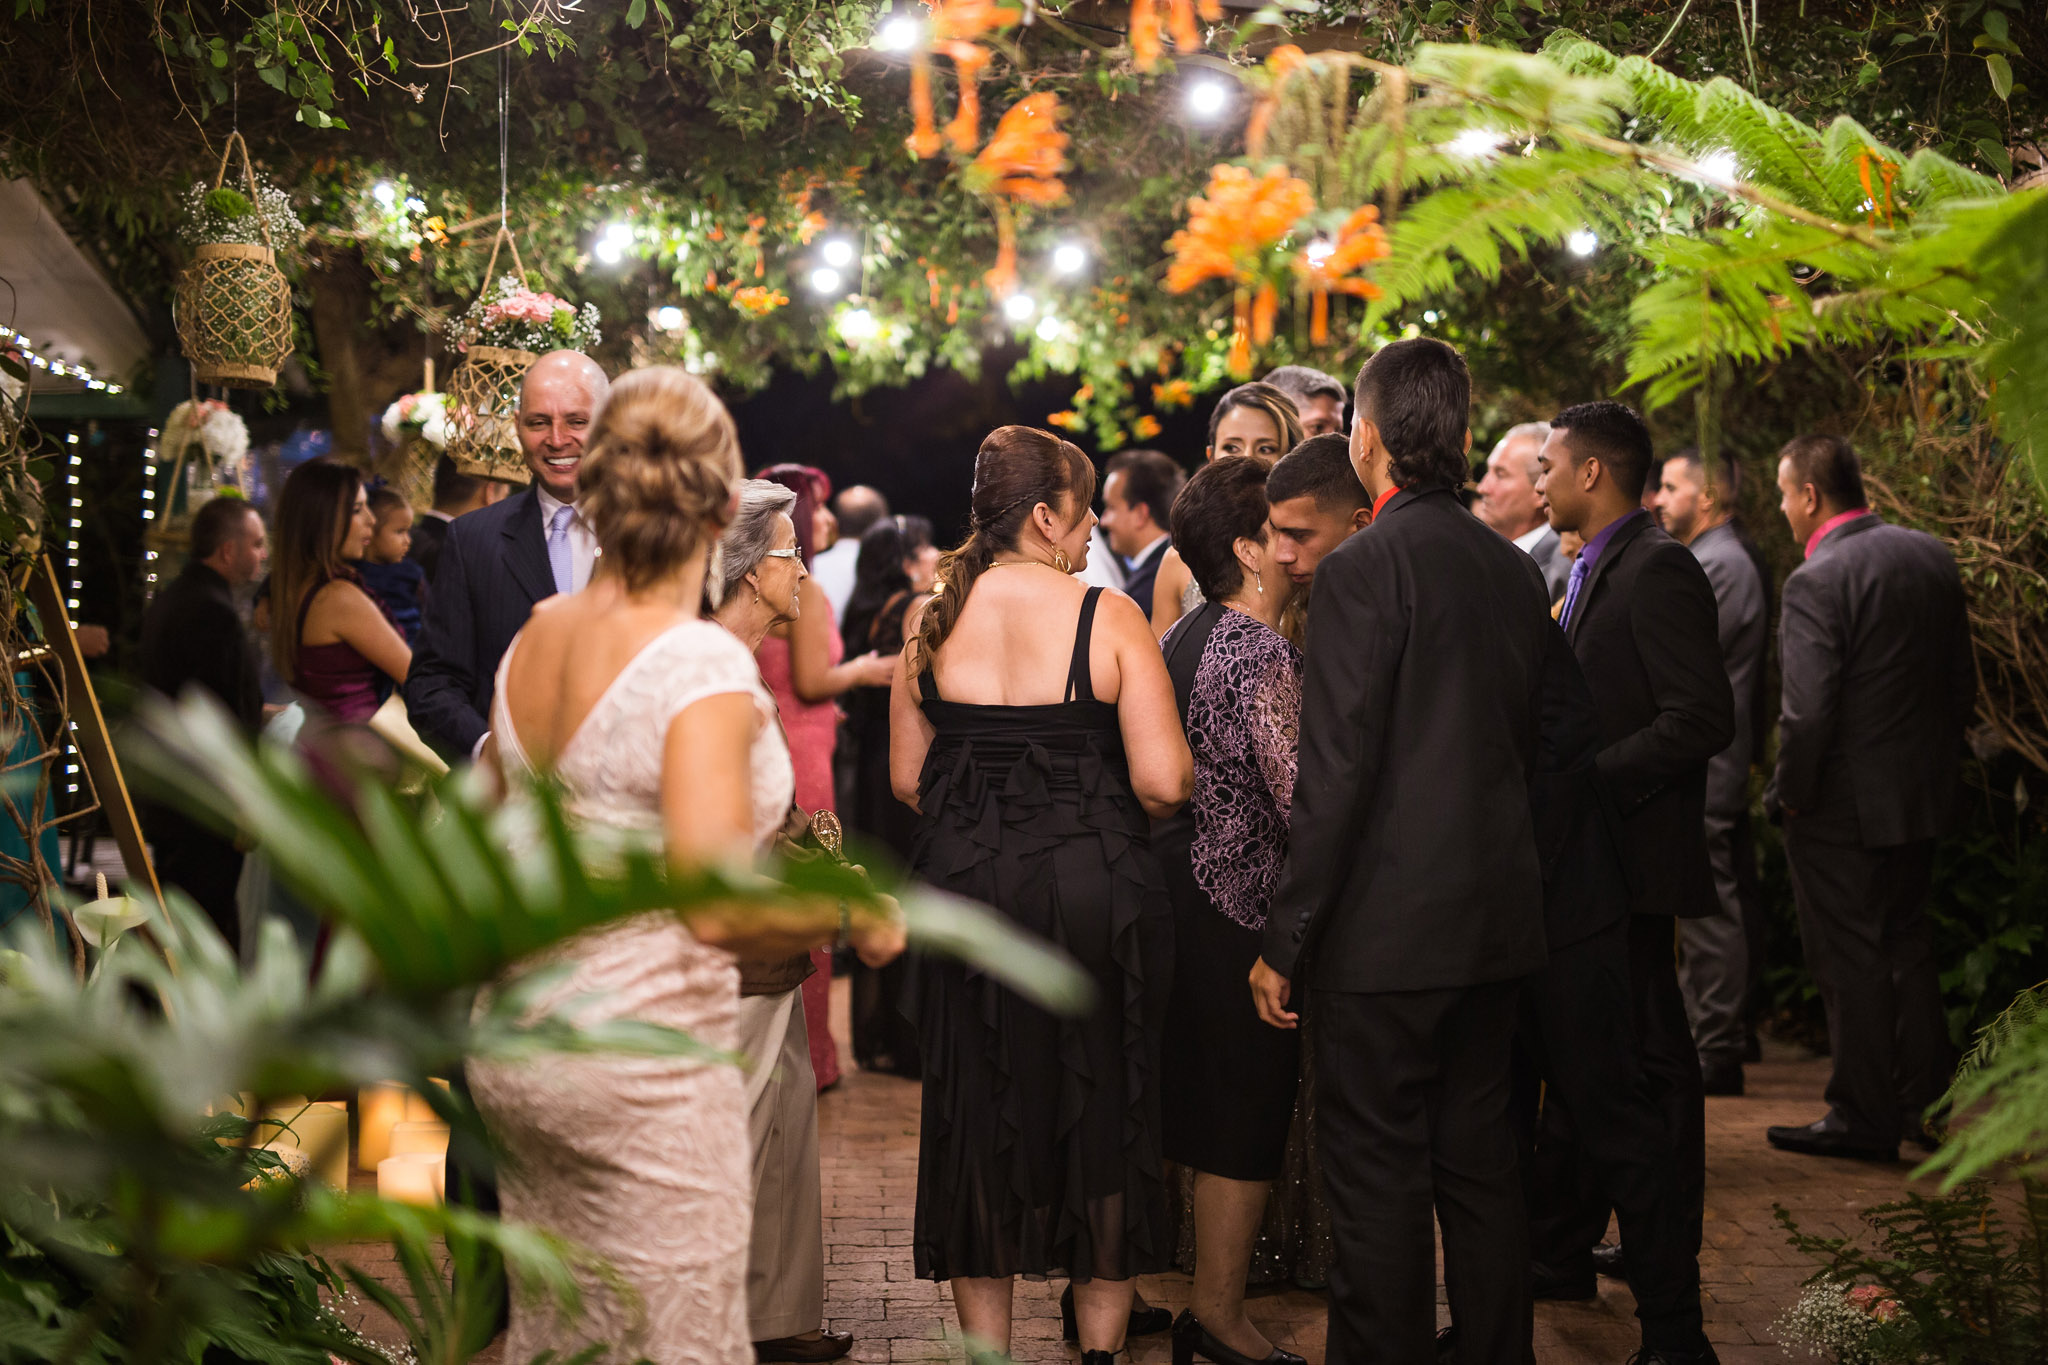 wedding-travellers-destination-wedding-photography-colombia-medellin-chuscalito